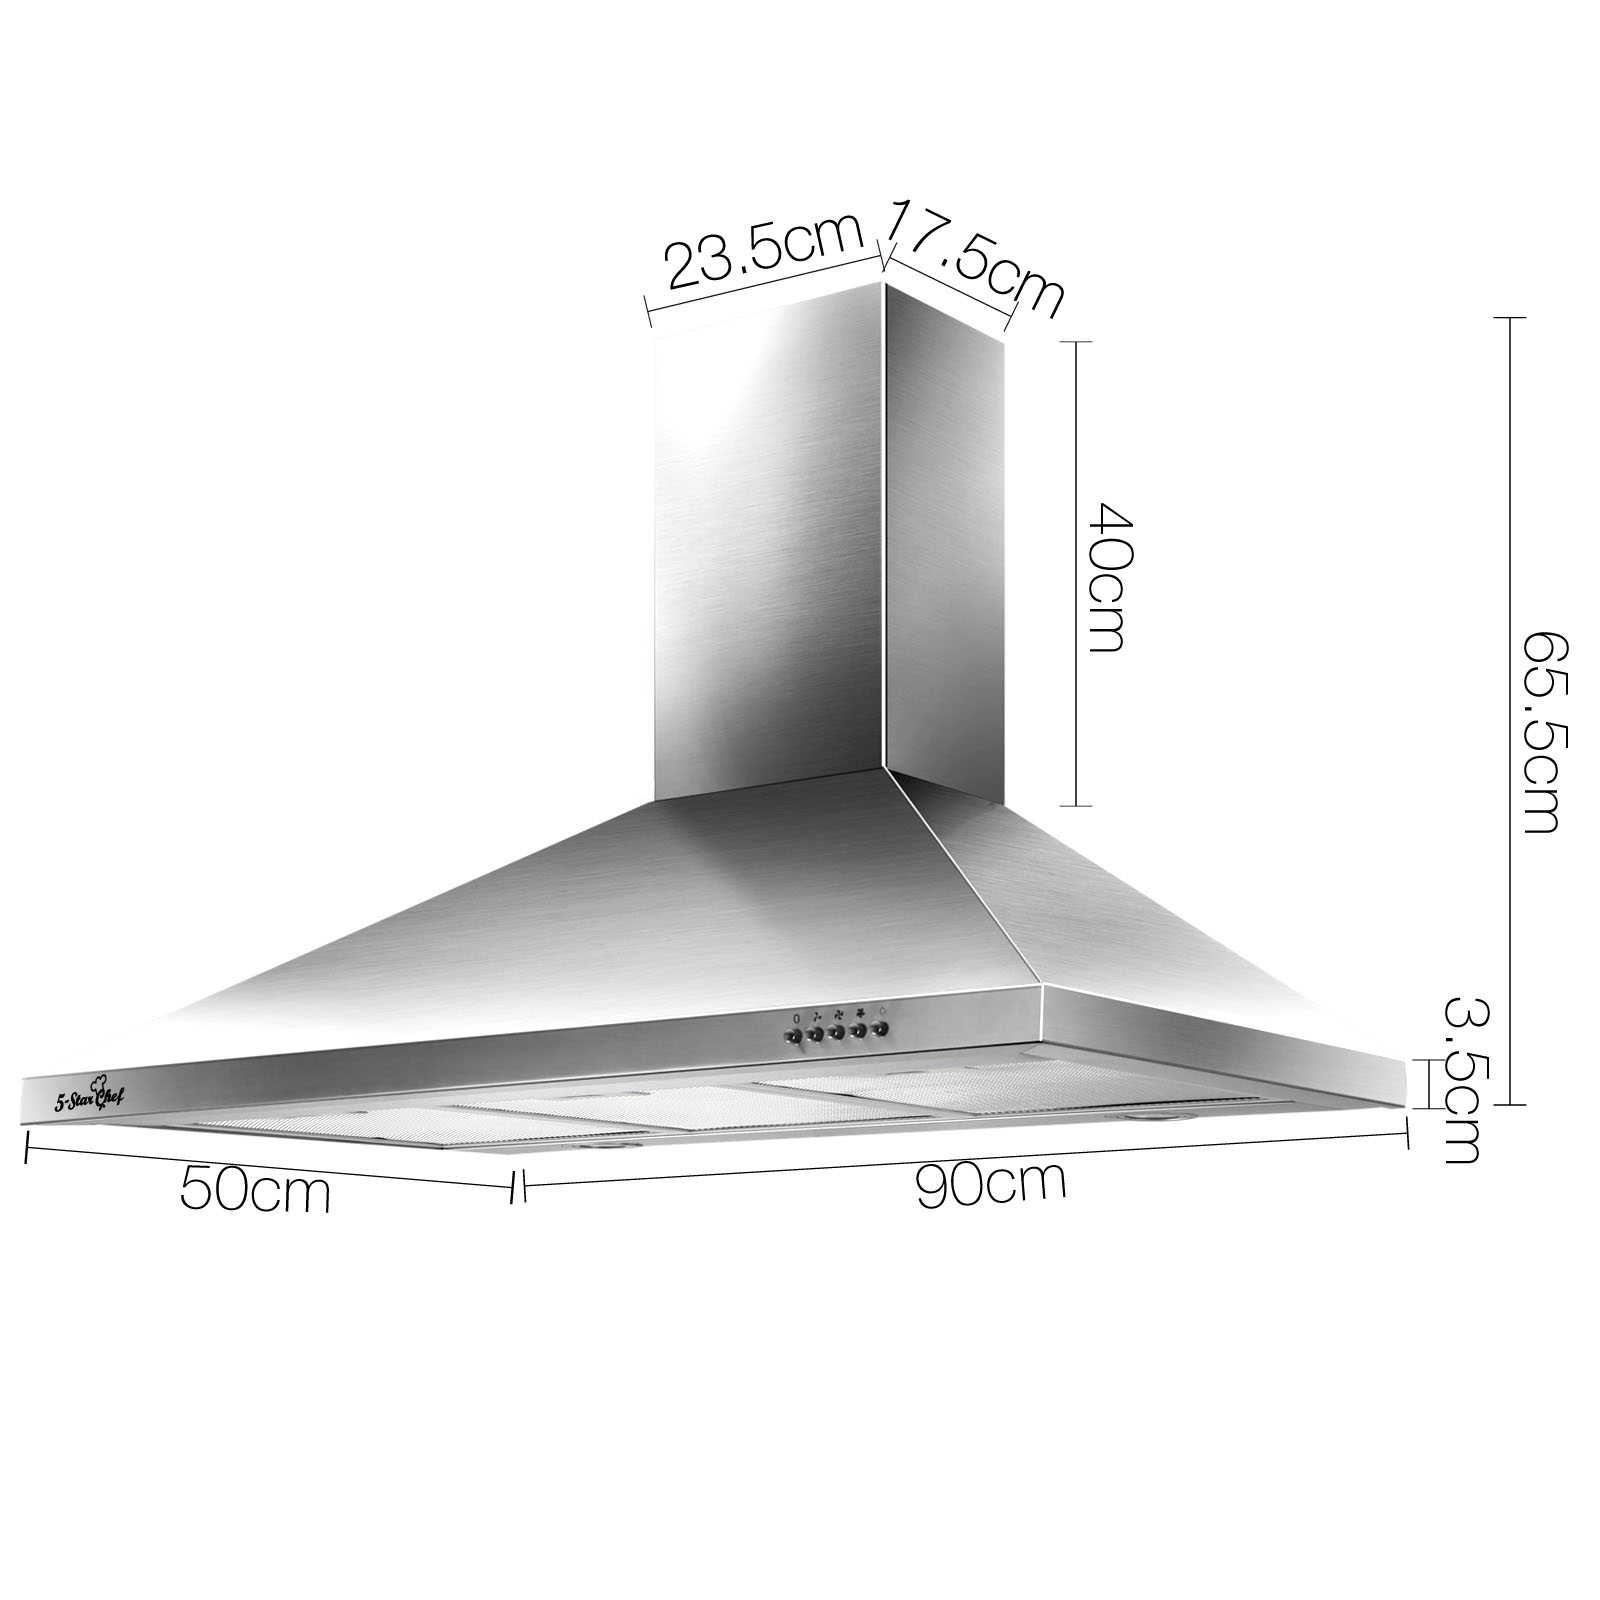 Range Hood Wall Mount Stainless Steel 900MM 90CM Kitchen Canopy Exhaust Extractor Fan  sc 1 st  eBay & Range Hood Wall Mount Stainless Steel 900MM 90CM Kitchen Canopy ...